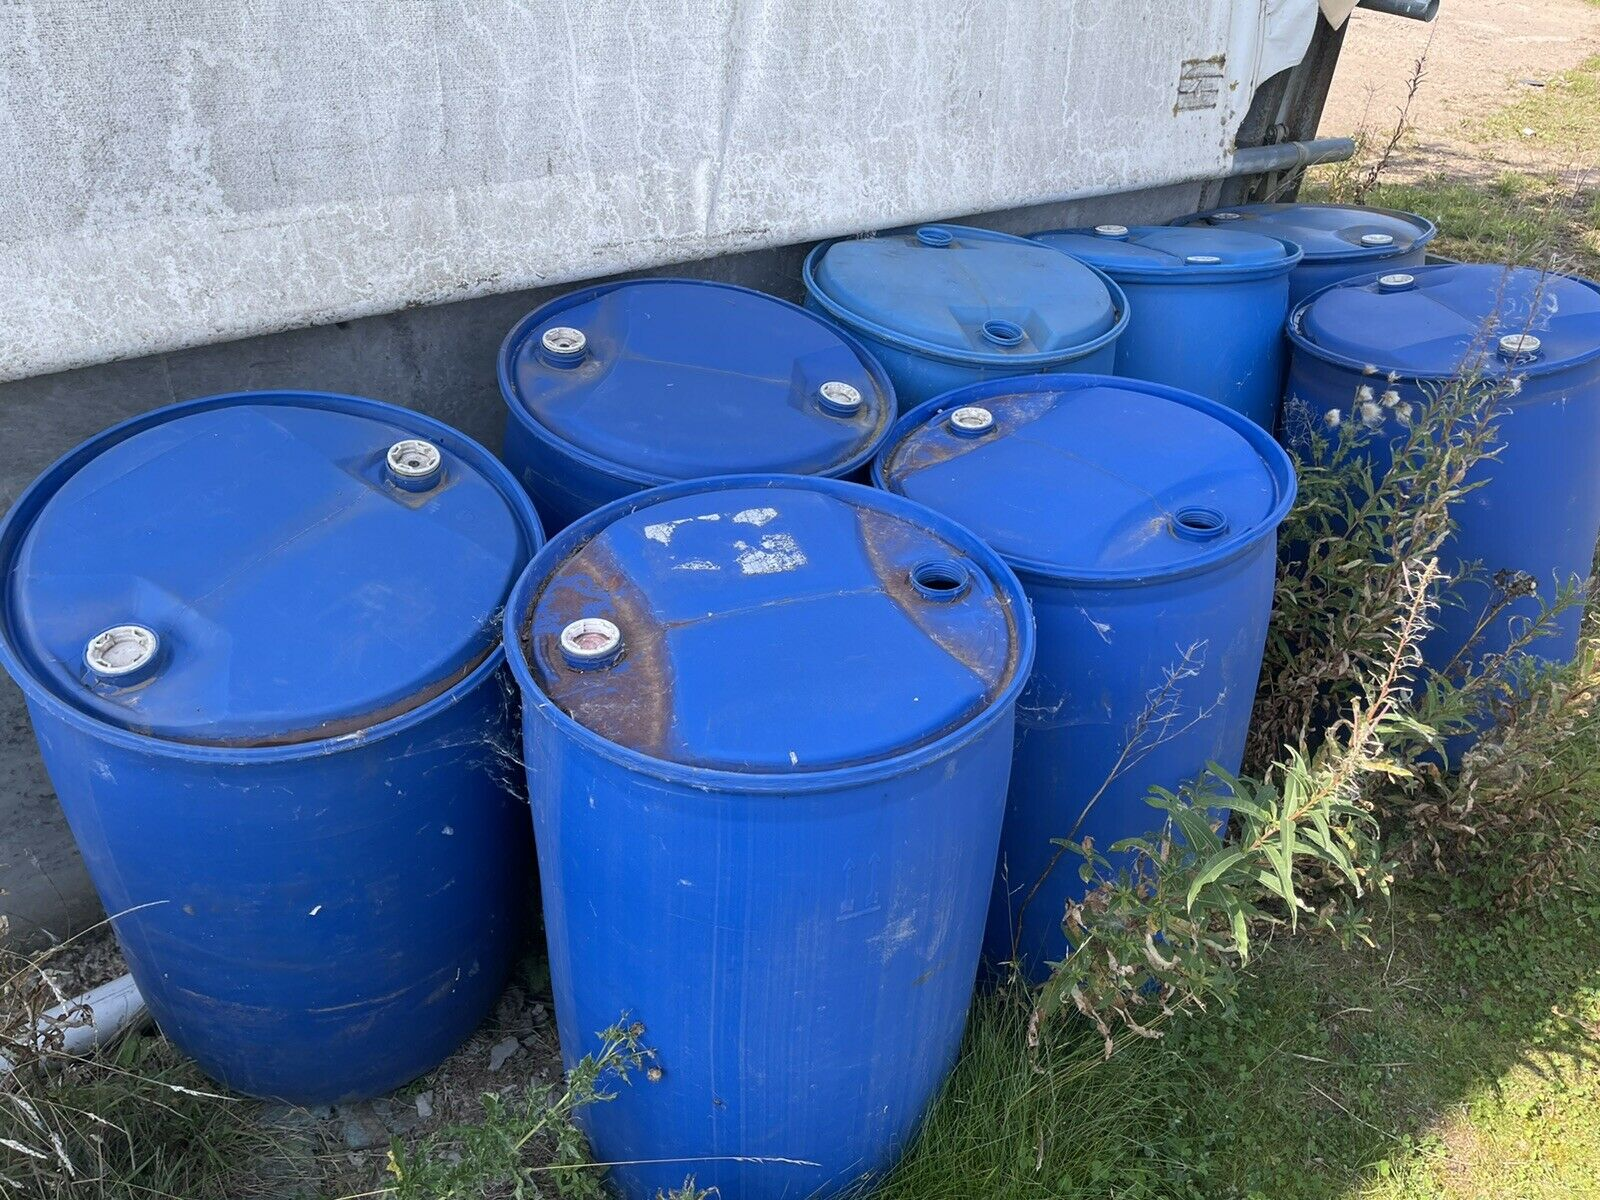 205 Litre Plastic Barrel Drum 8no Available Auction Is For 1no Only